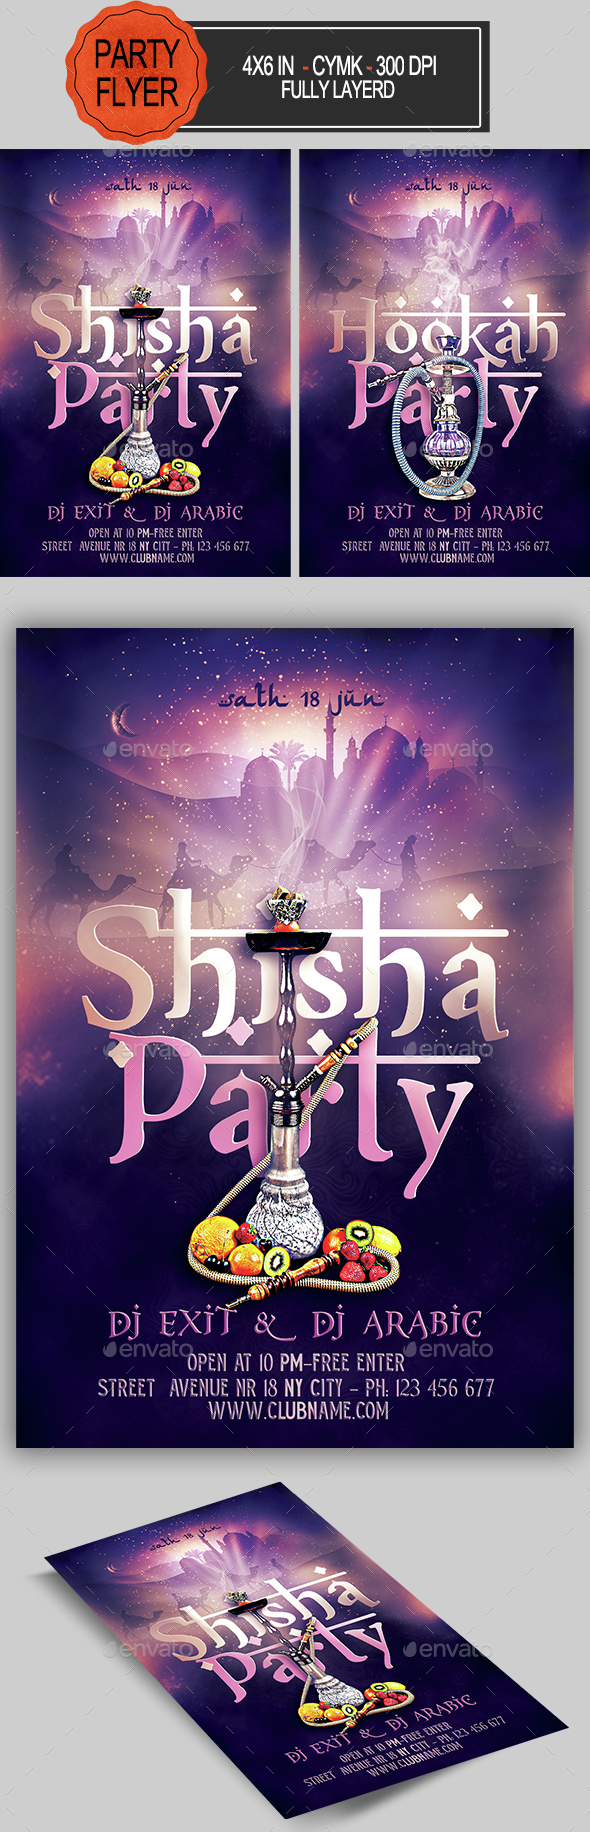 Hookah Shisha Flyer  Flyer Template Fonts And Template